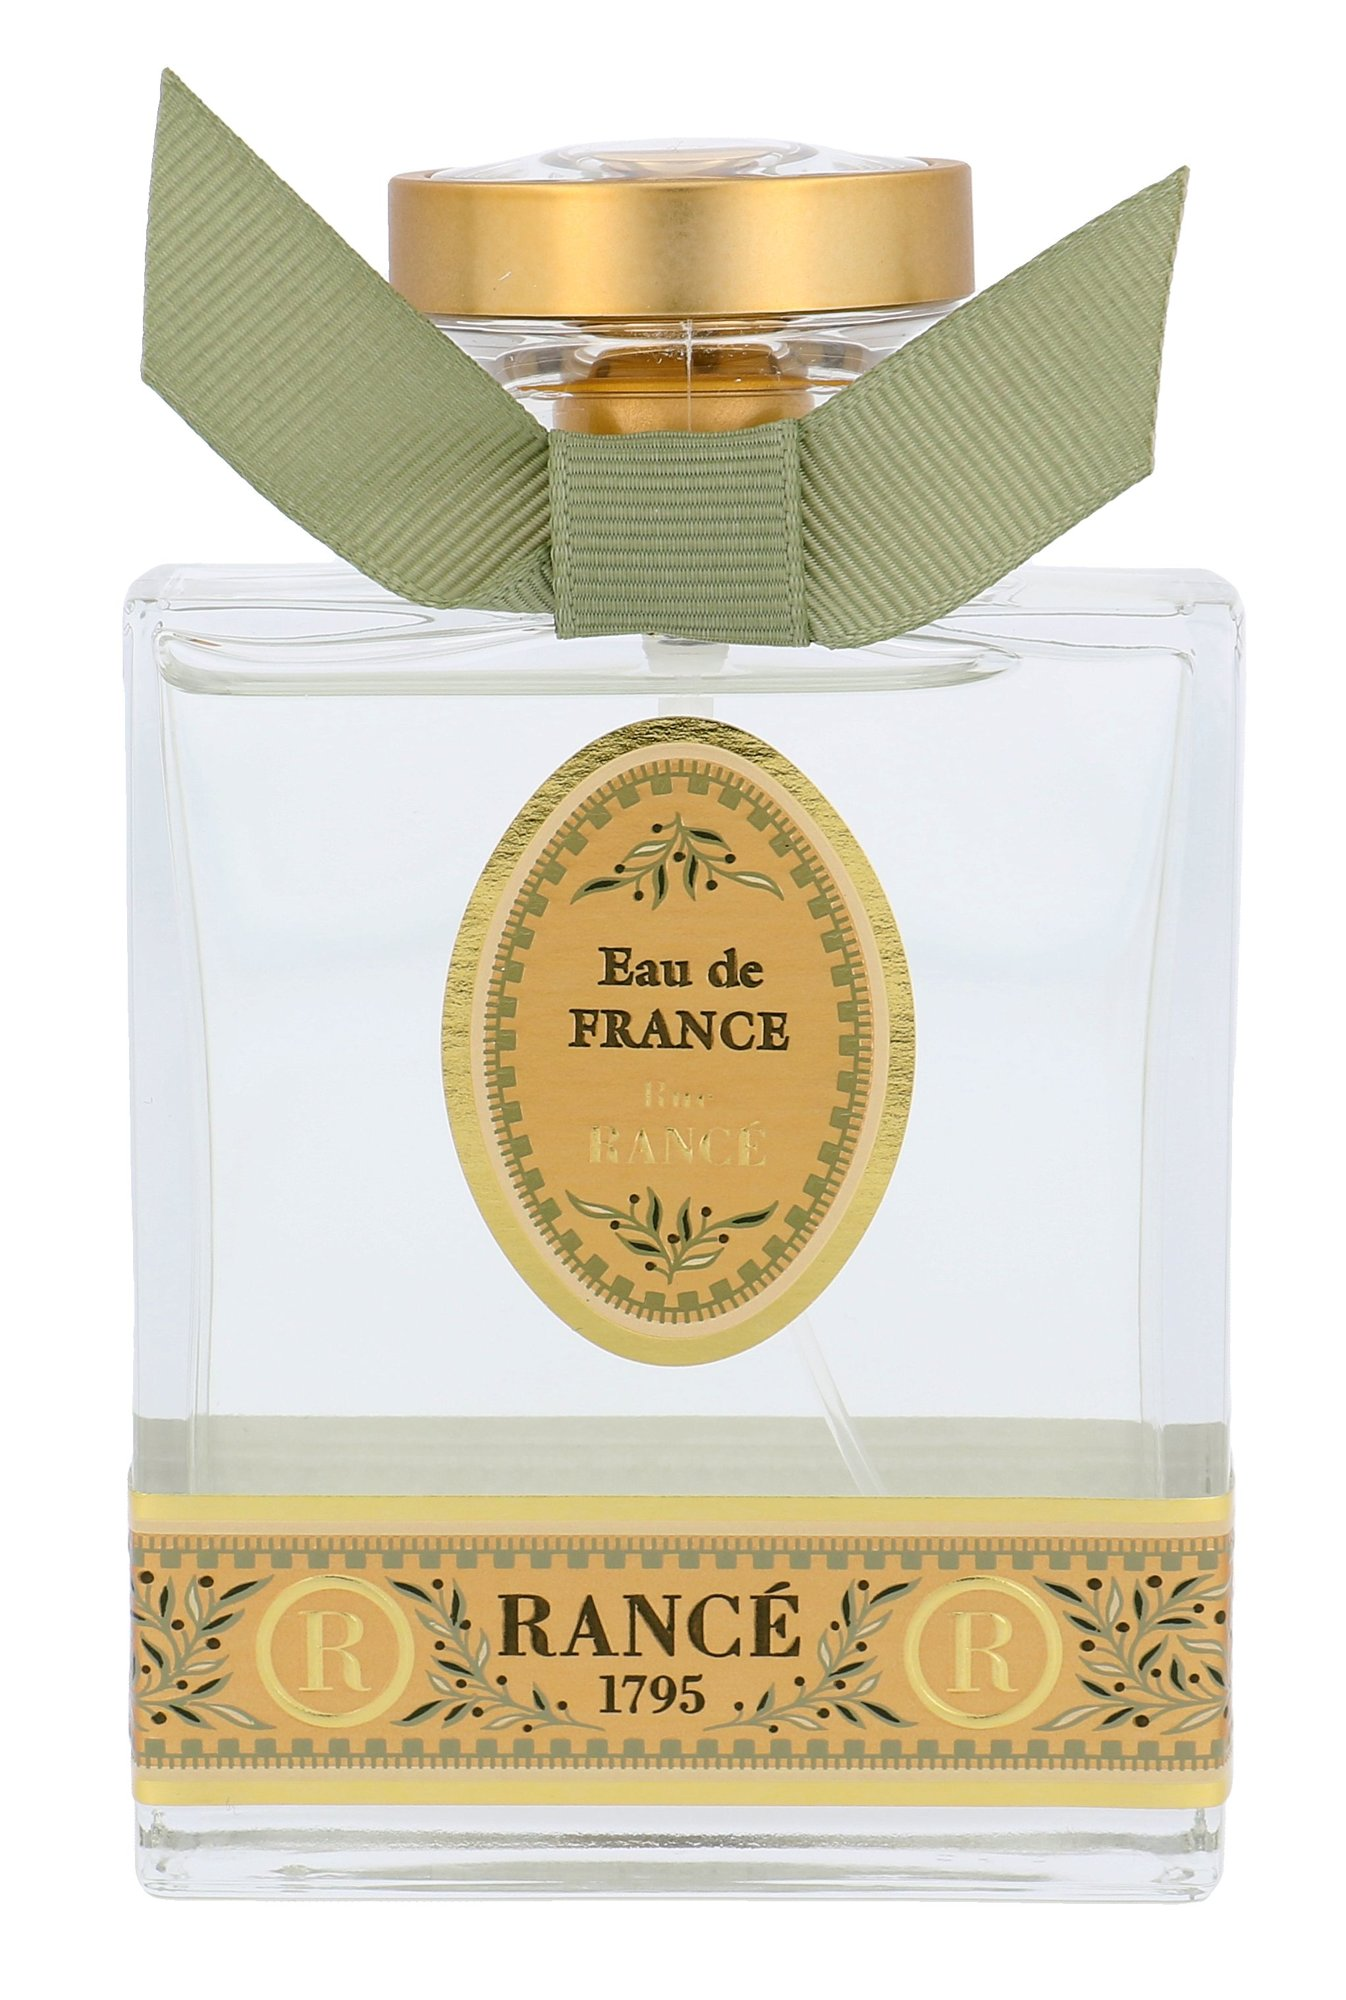 Rance 1795 Rue Rance Eau de France EDT 100ml